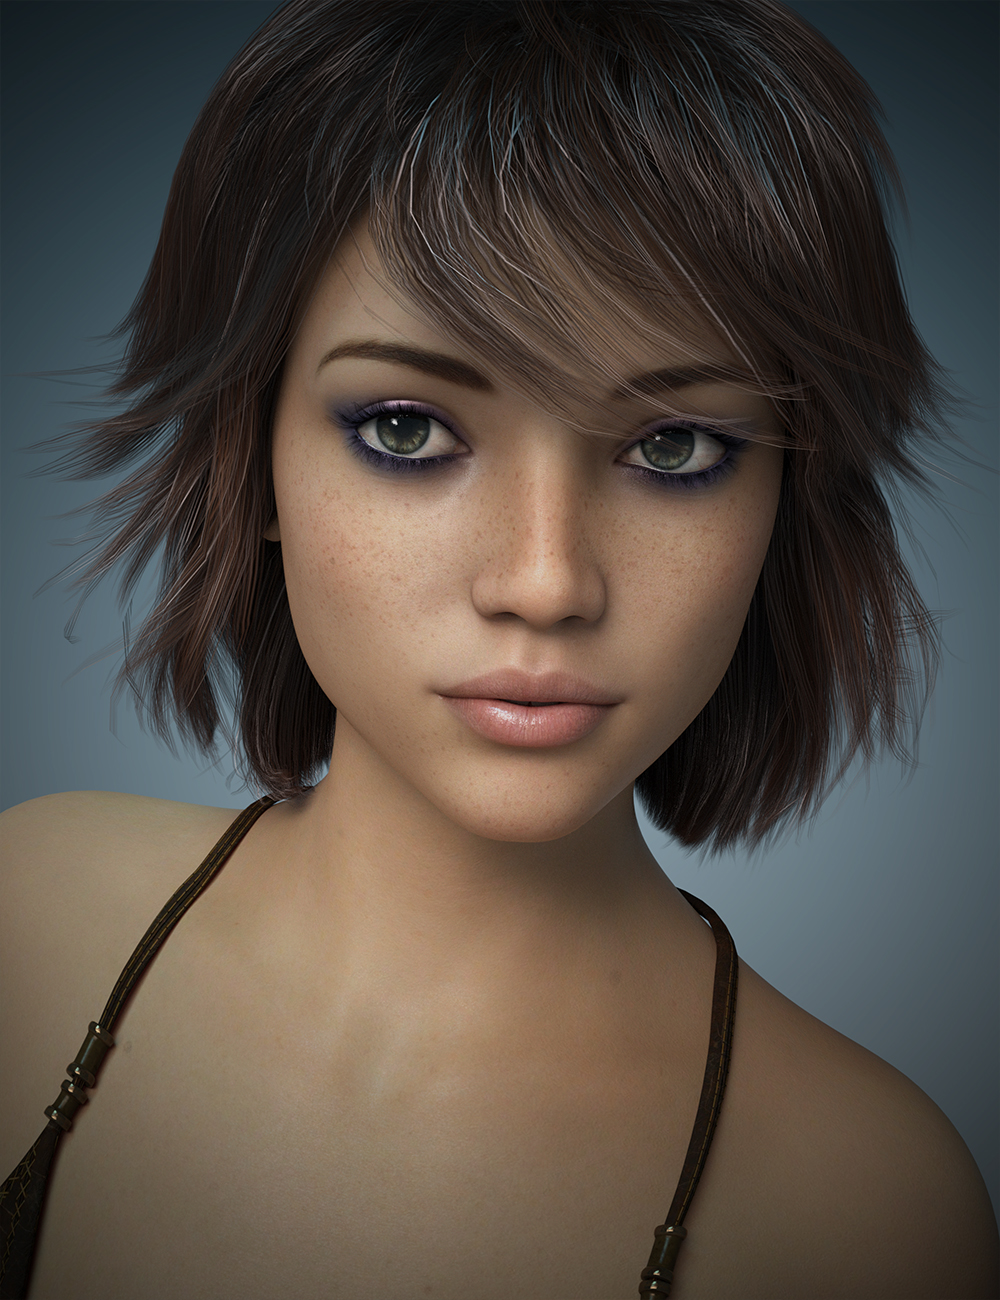 FWSA Stacie for Genesis 8